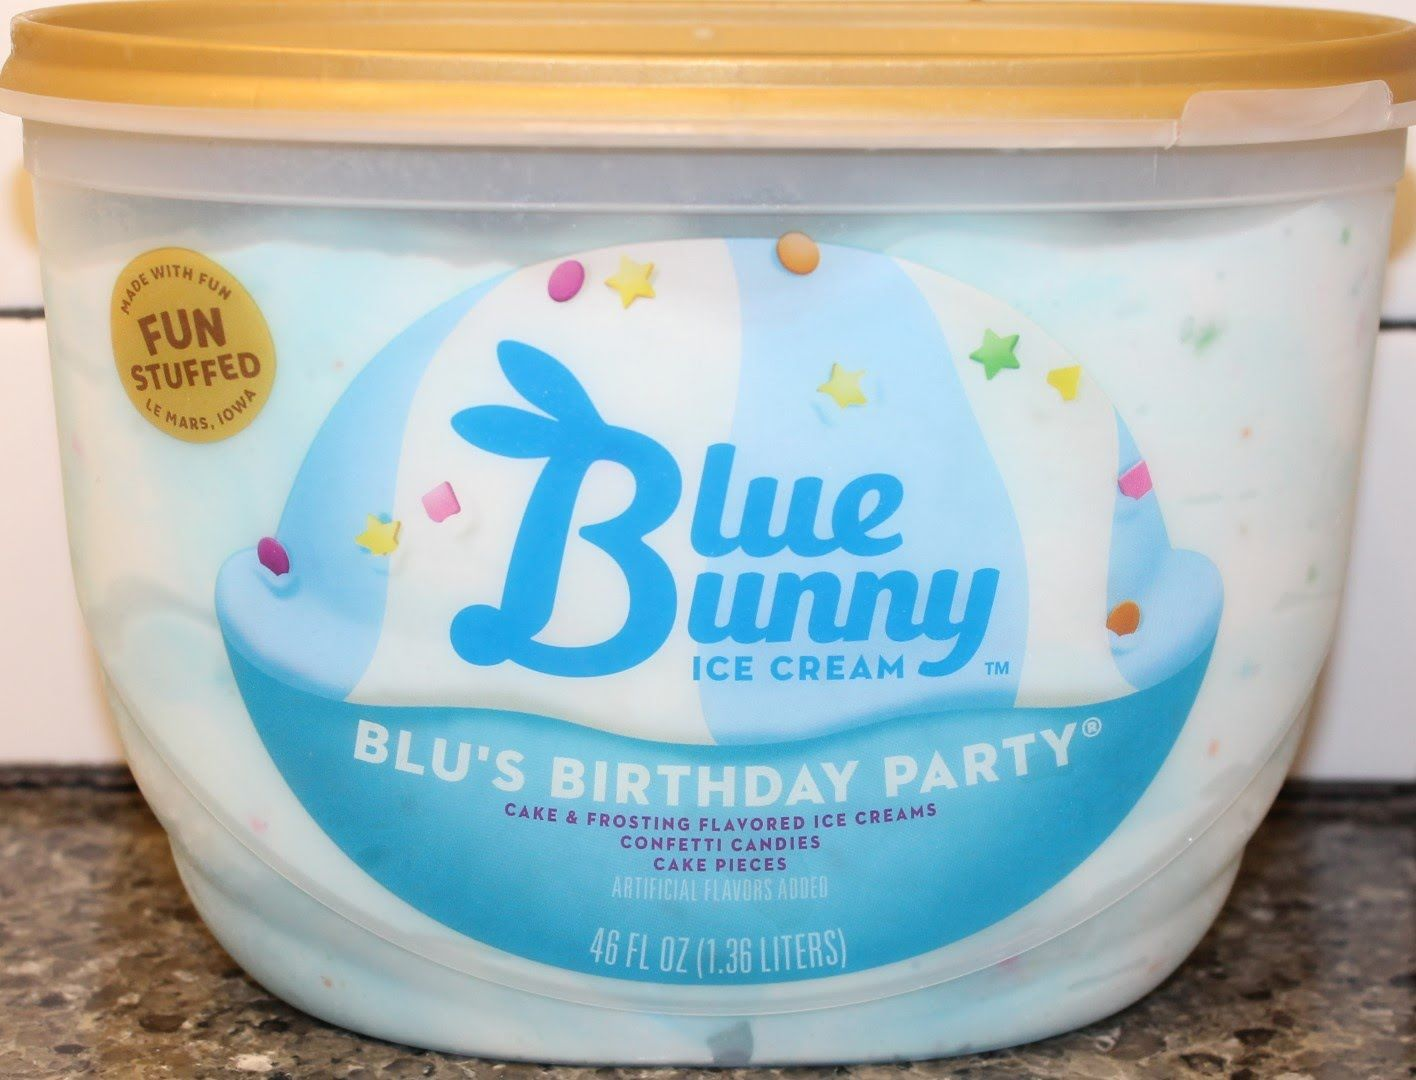 Blue Bunny Ice Cream Blus Birthday Party Review Youtube Friends